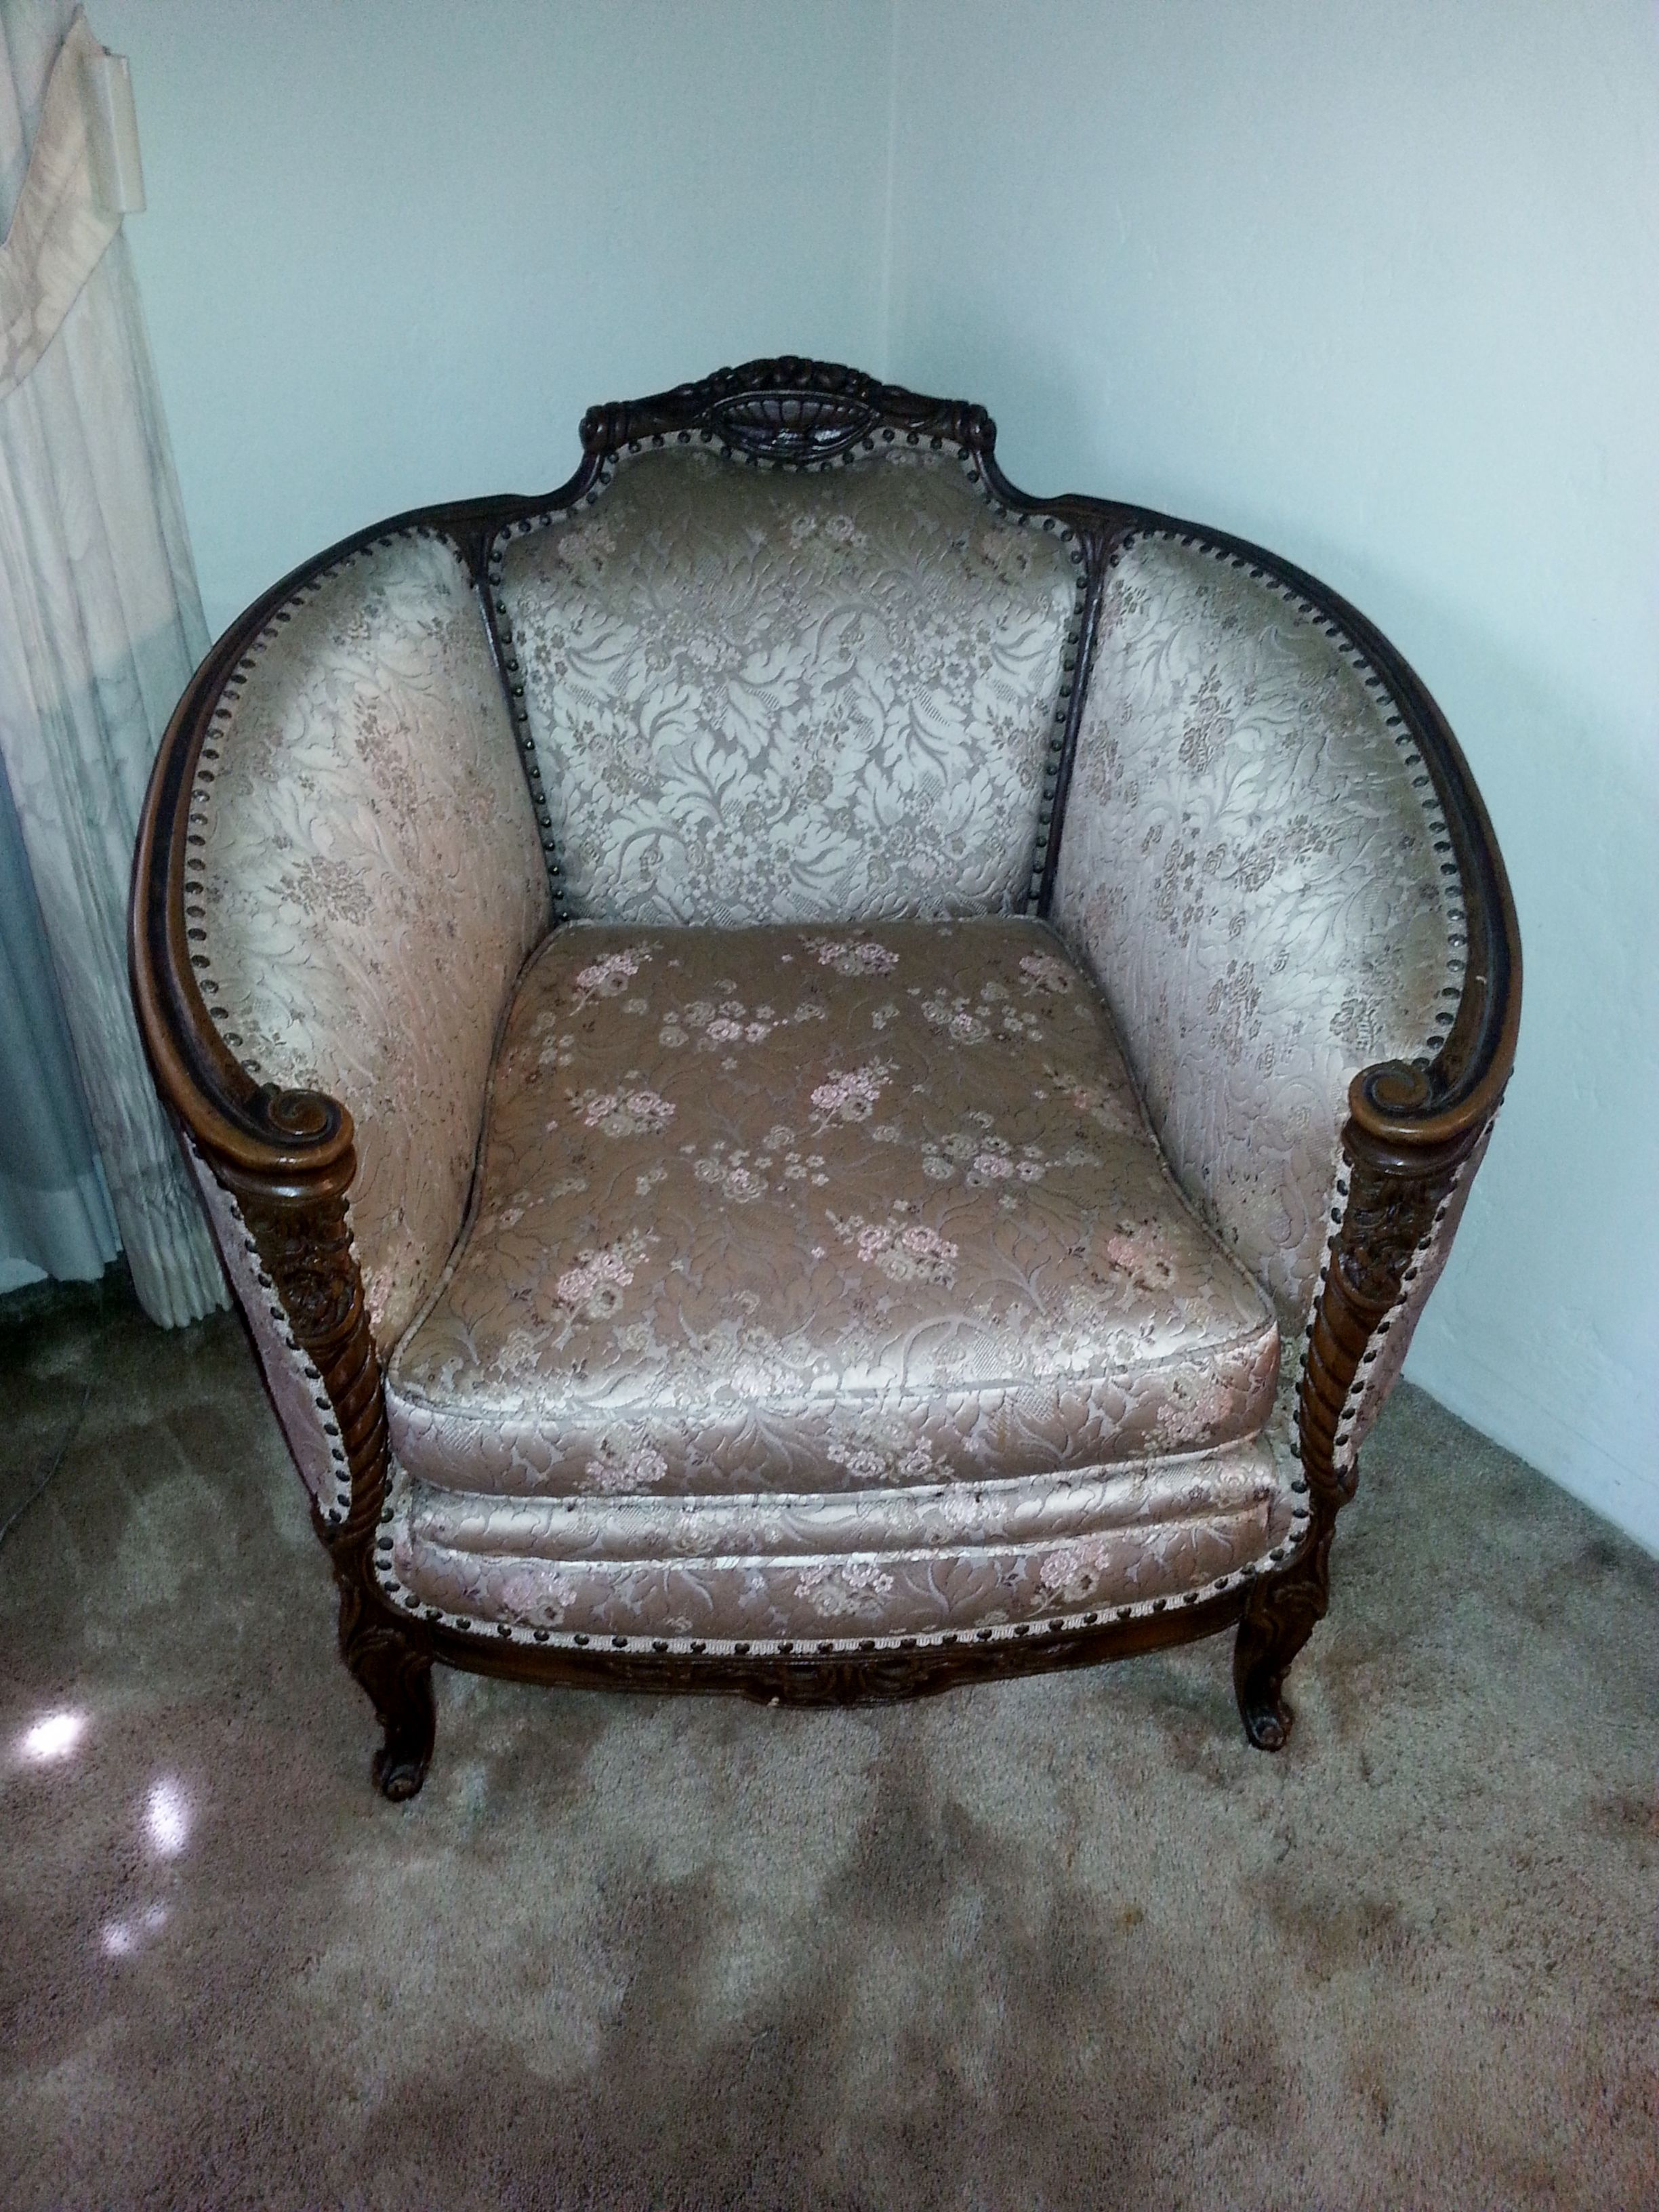 Great Antique 1930 s French chair at Crown City Estate Sale in Los